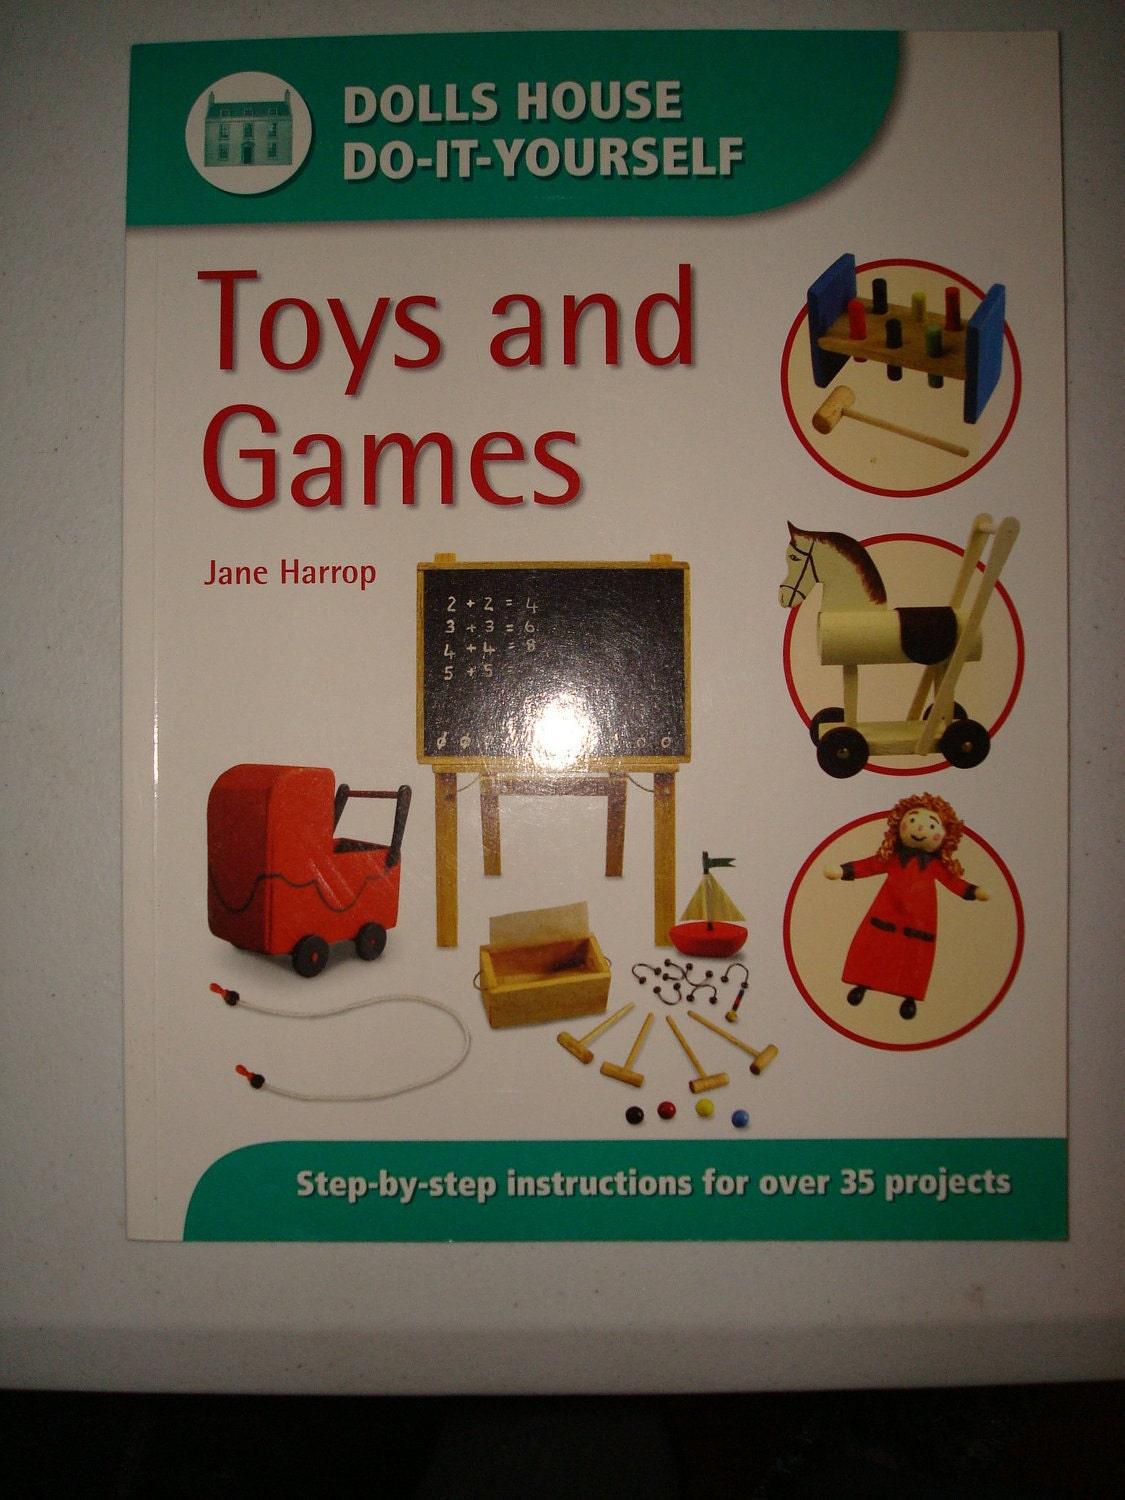 Toys and Games (Dolls House Do-It-Yourself) Jane Harrop